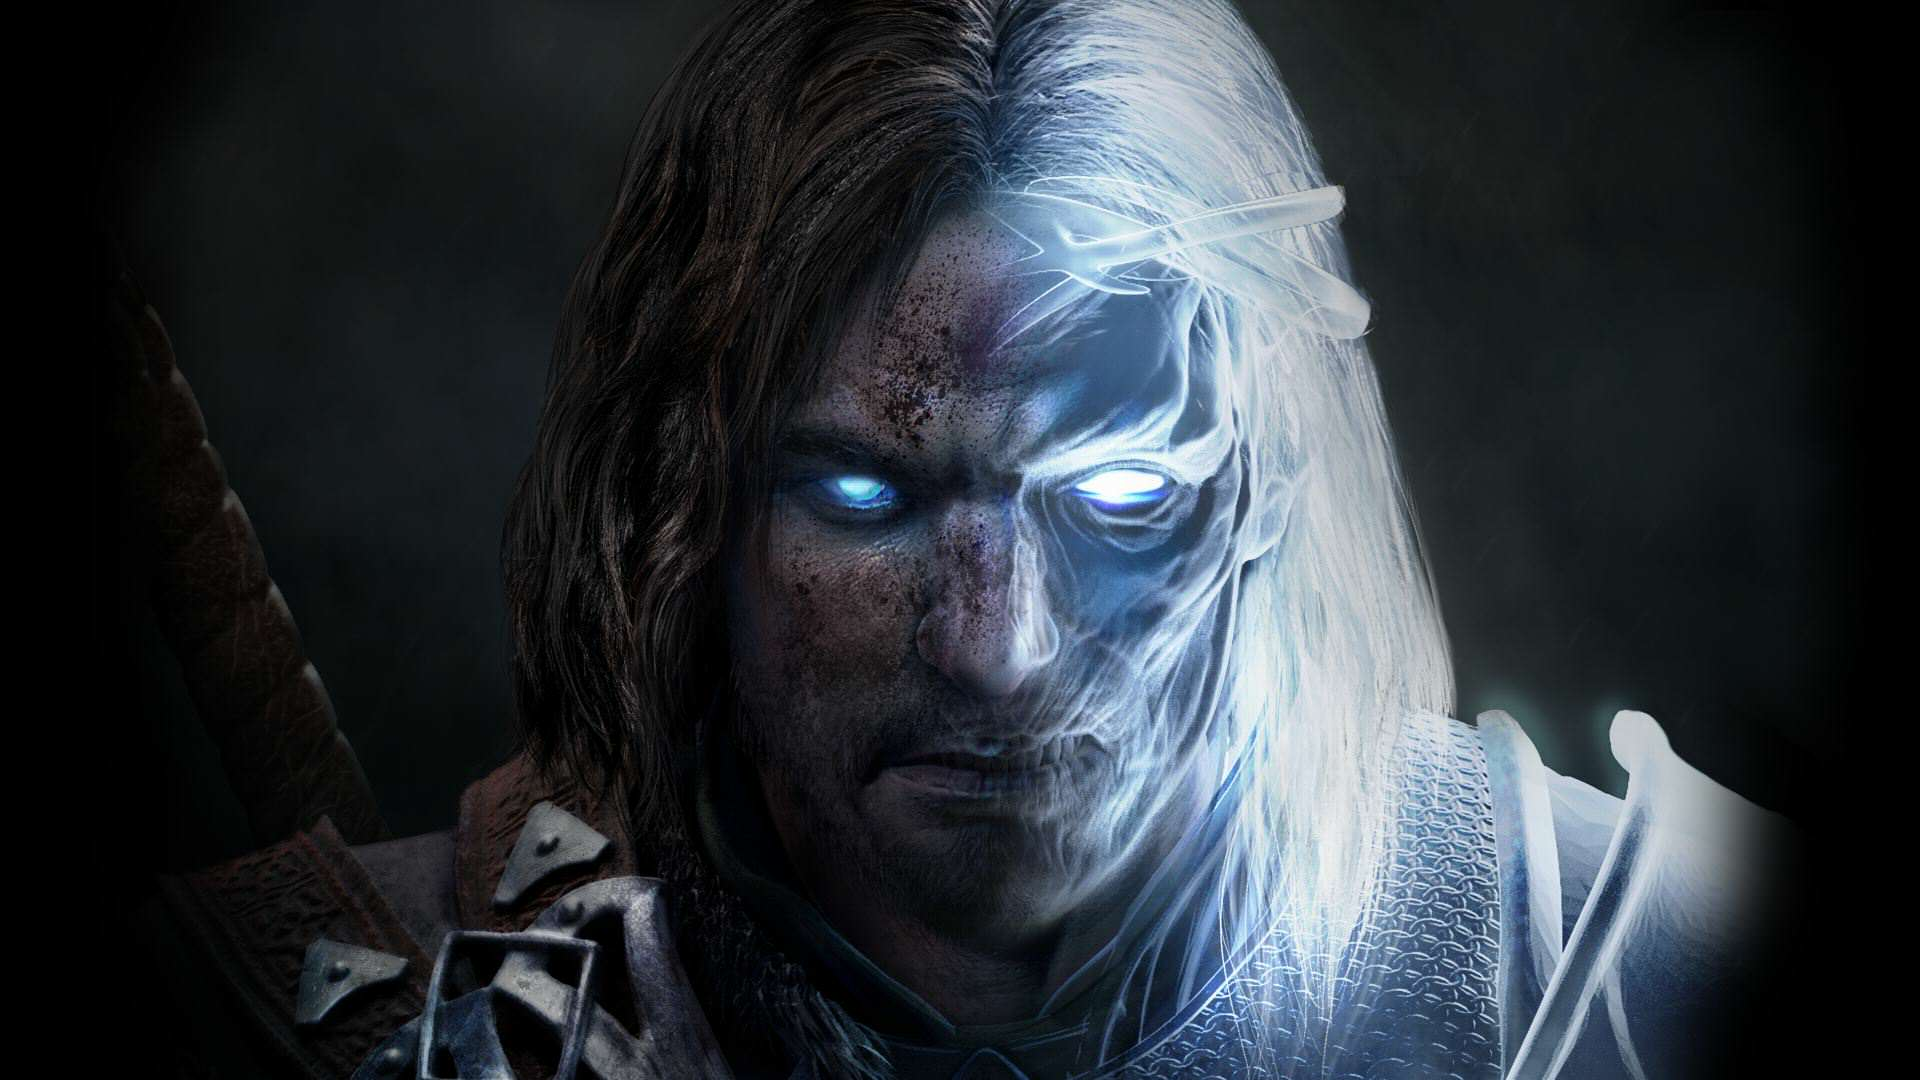 PewDiePie Responds To Shadow Of Mordor Sponsorship Allegations image 1 1